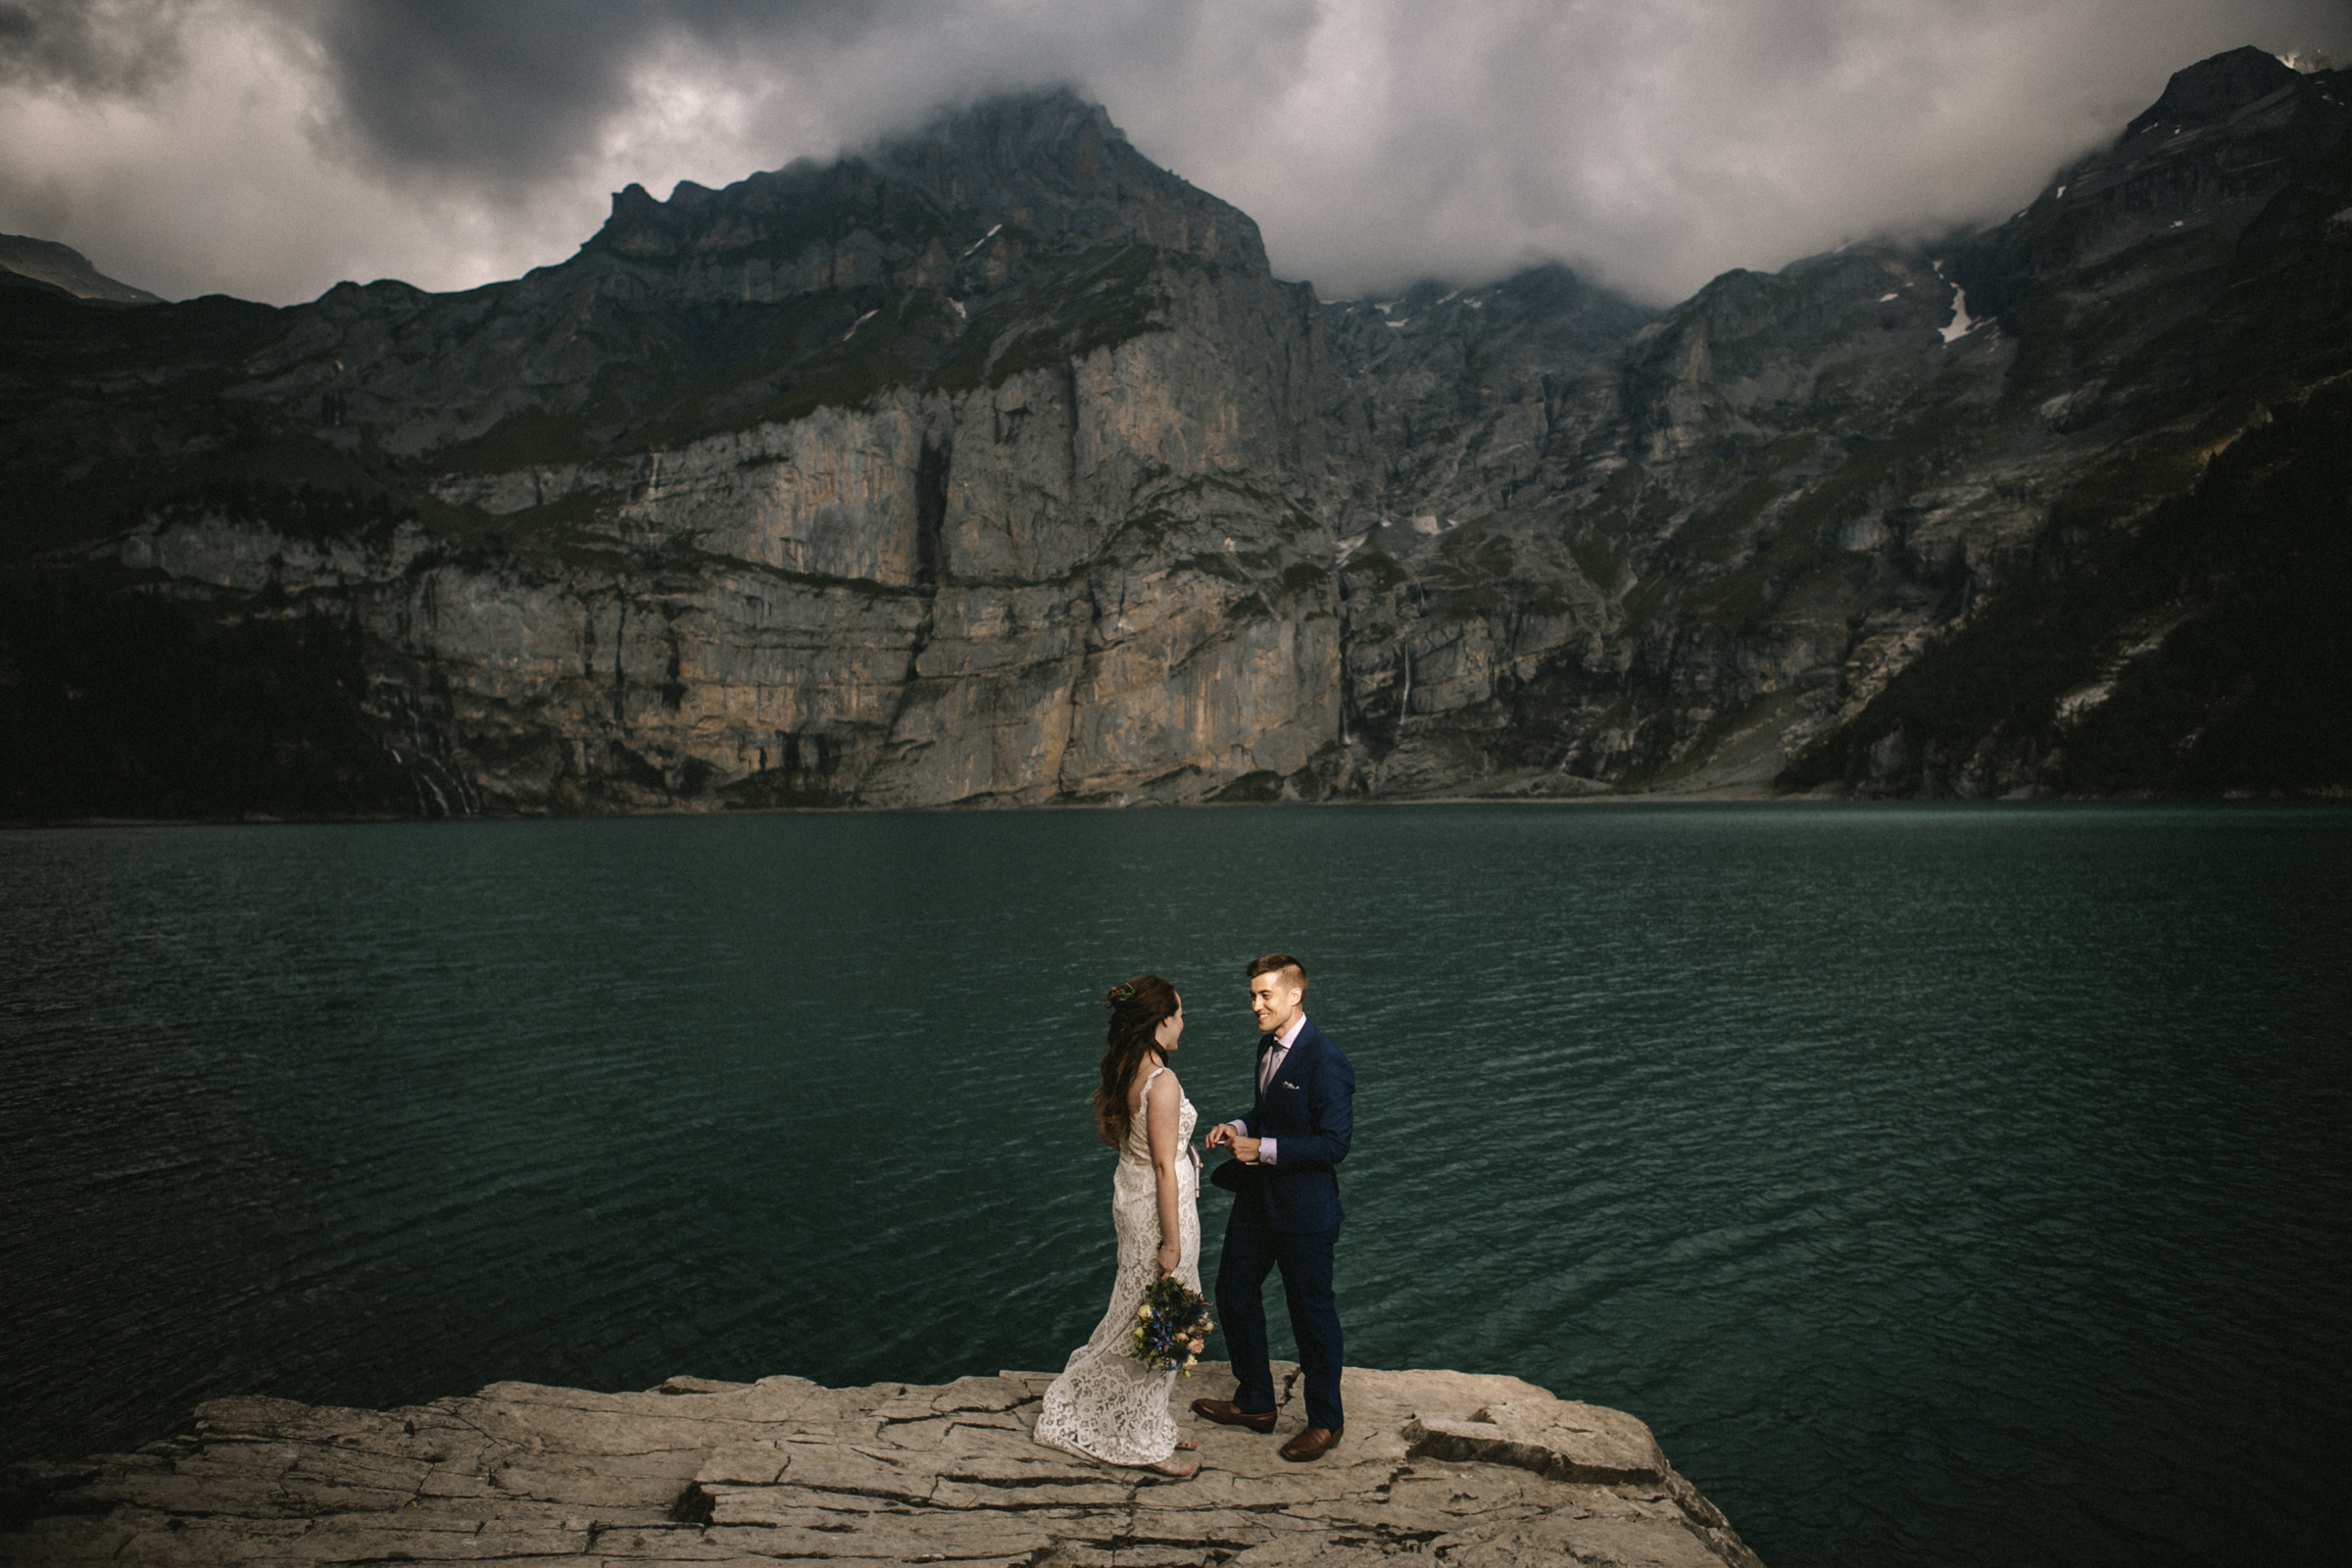 A Lakeside Elopement in the Swiss Alps by Veronika Bendik